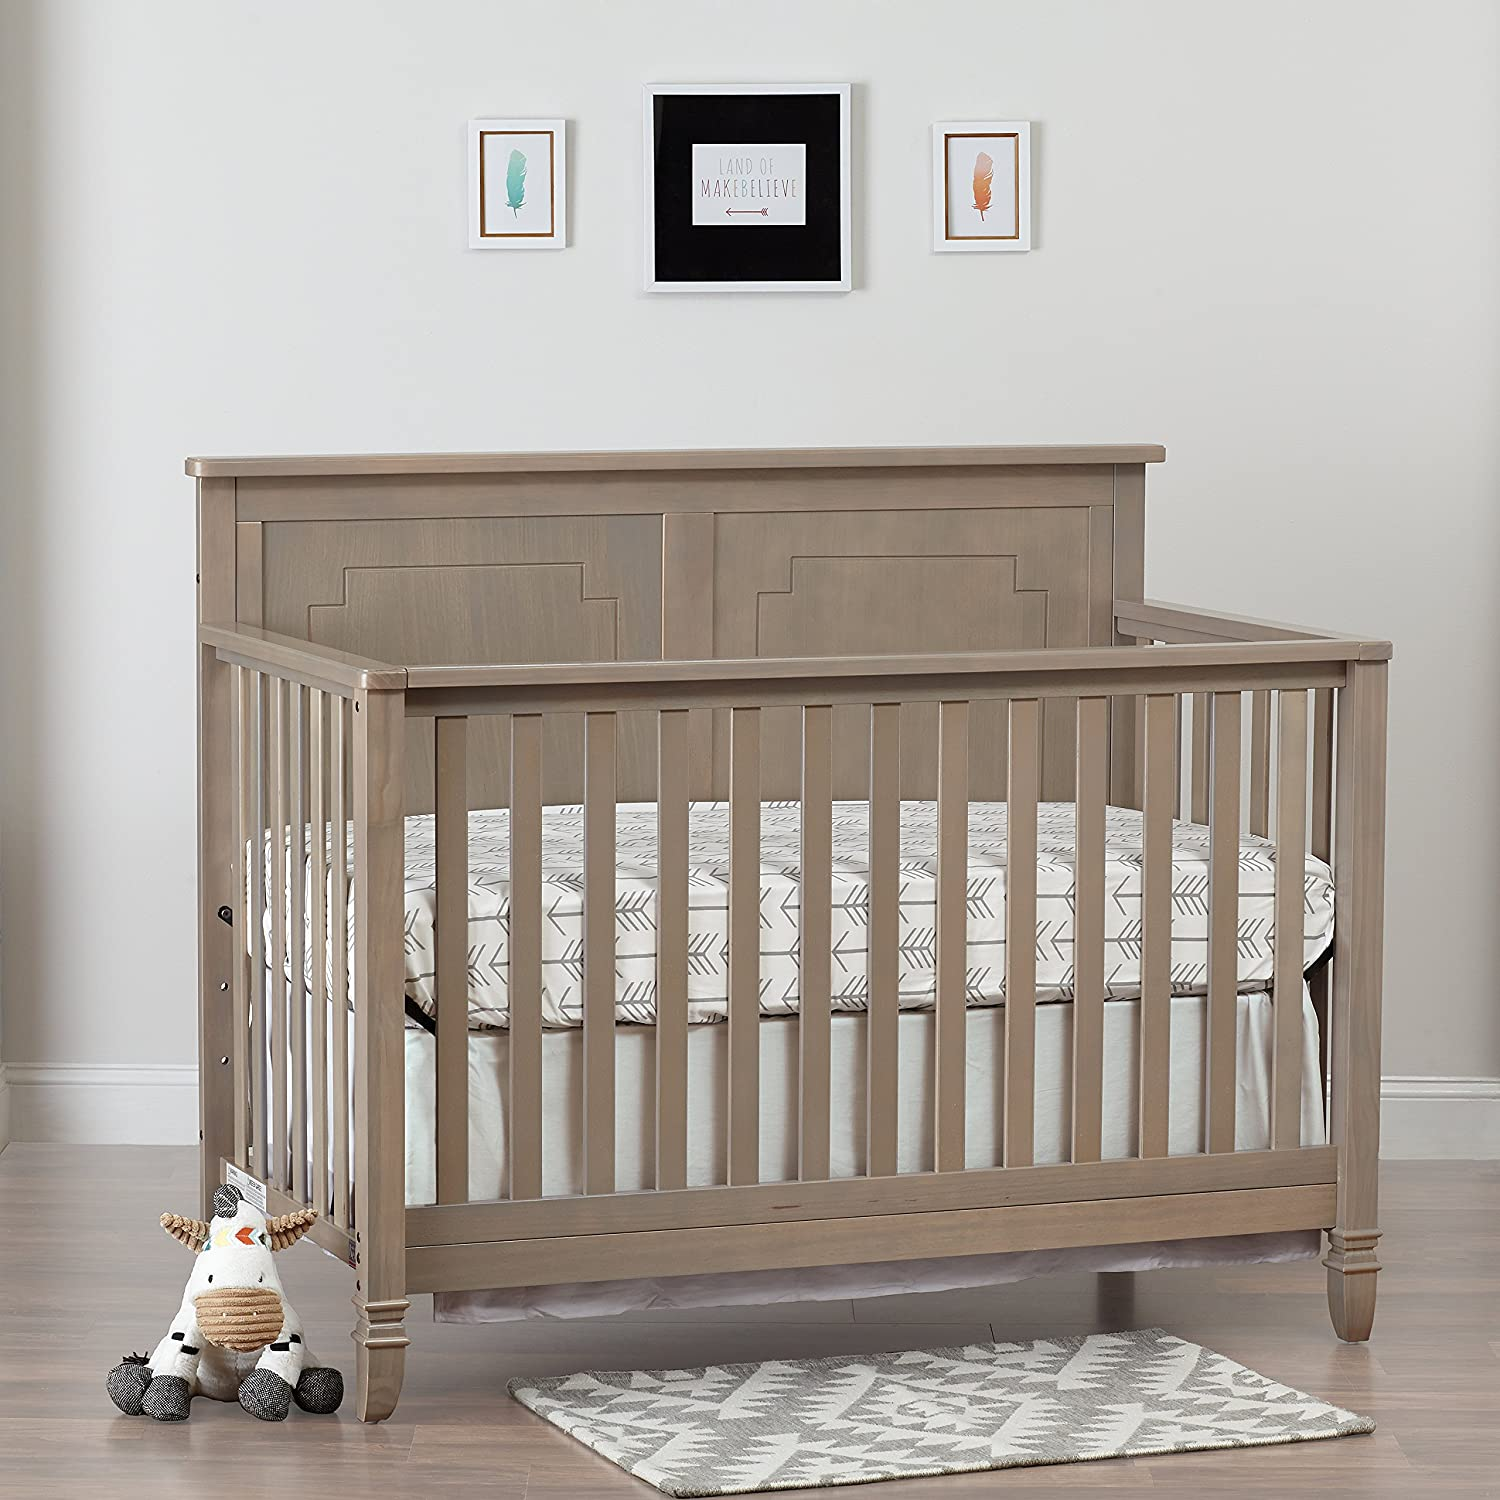 Cribs Made In Usa Solid Wood Childrens Furniture Ba Eco